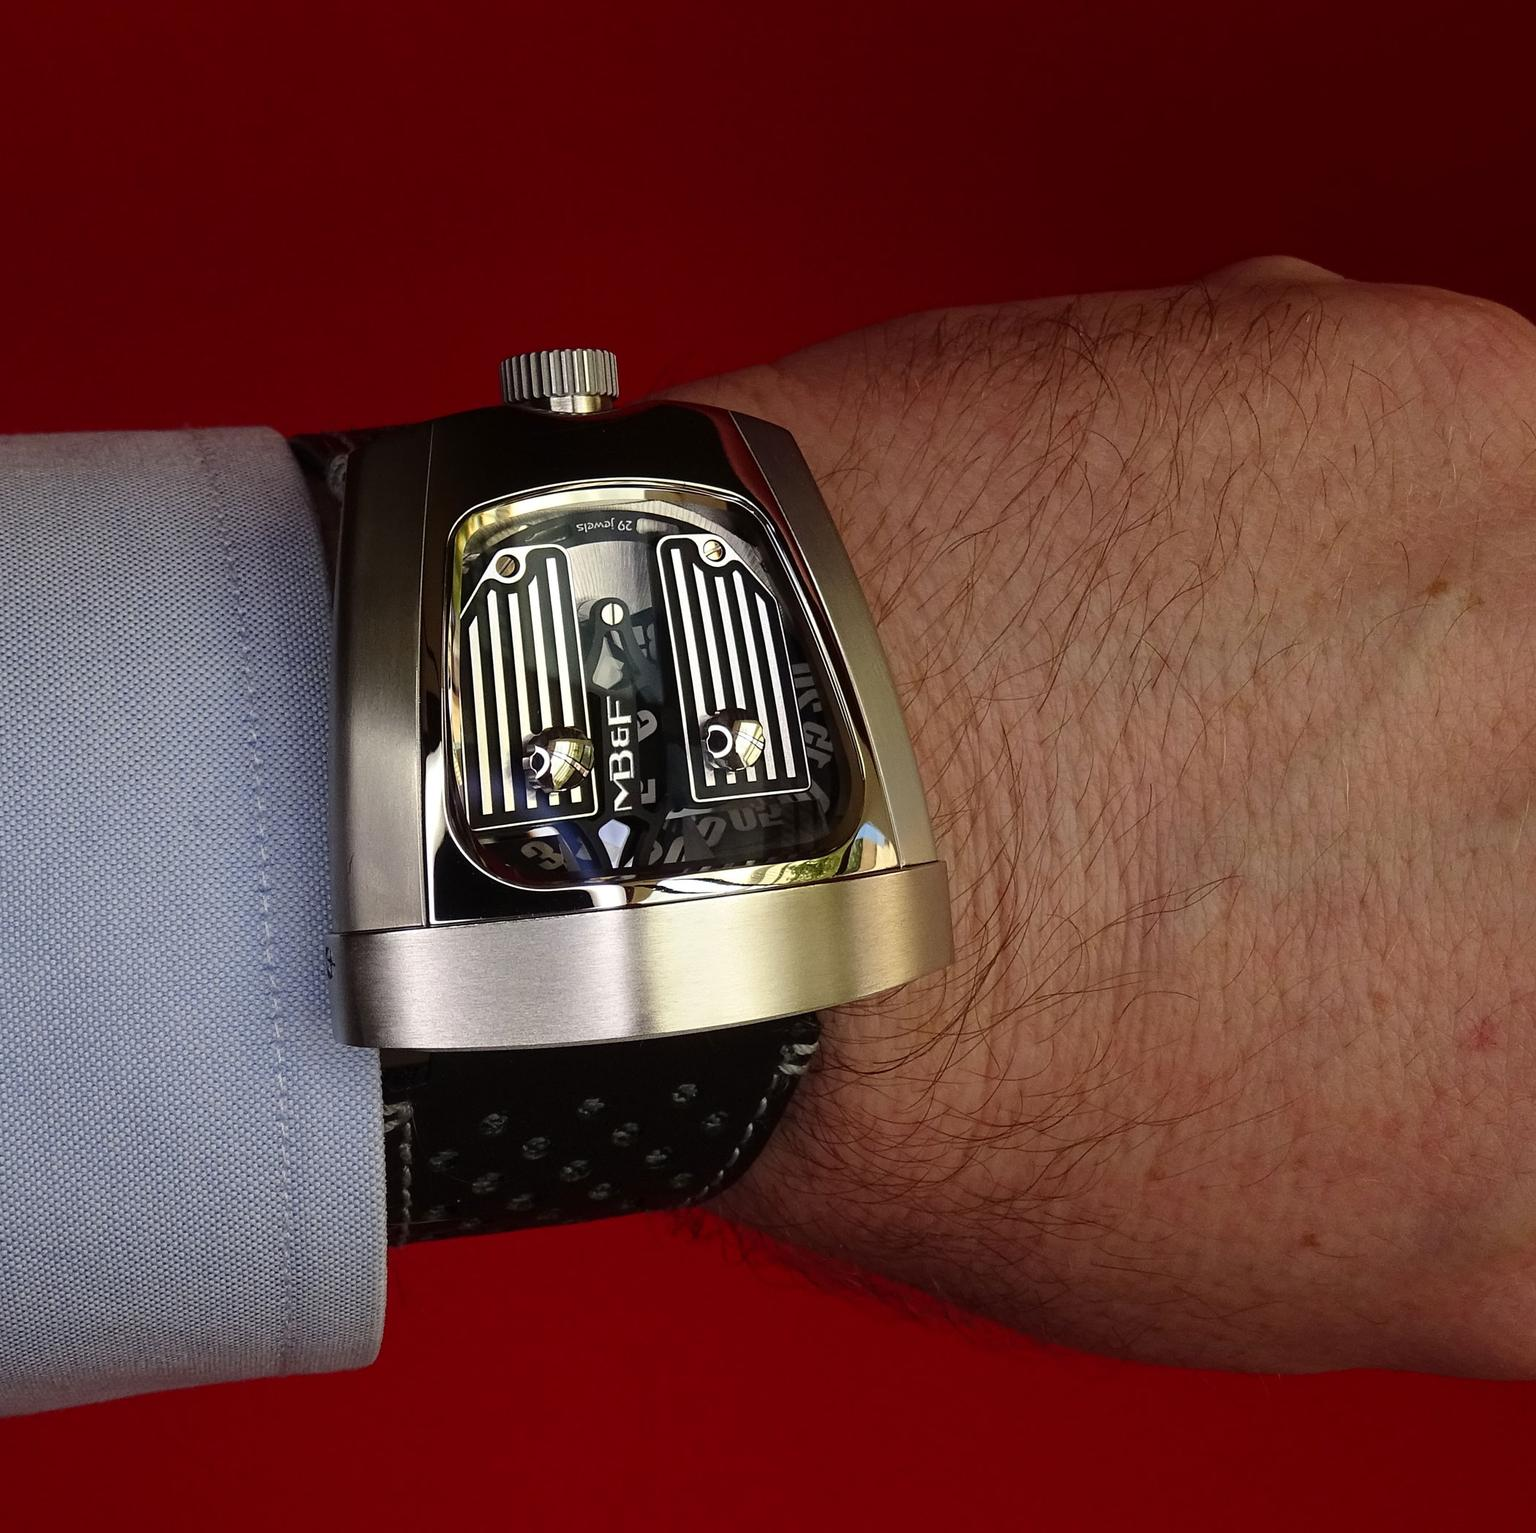 SIAR Madrid MB &F HMX spaceship watch